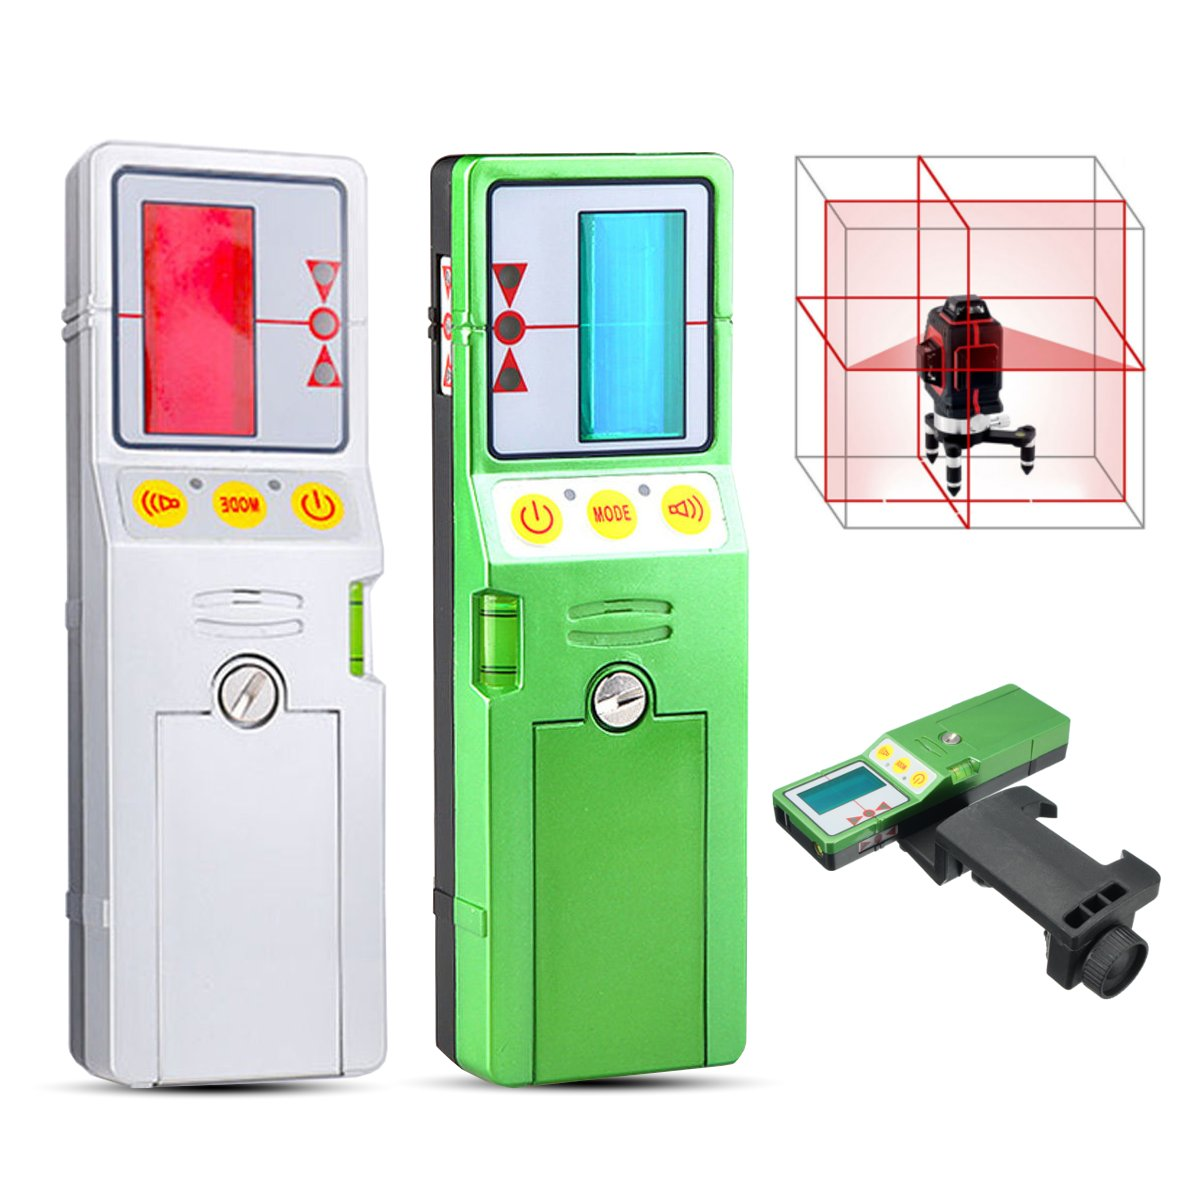 12 Line 3D Laser Level Detector Receiver Red Green Line Vertical with Clamp FD-9/FD-9G 2pcs h7 55w 12v halogen bulb super xenon white fog lights high power car headlight lamp car light source parking 6000k auto